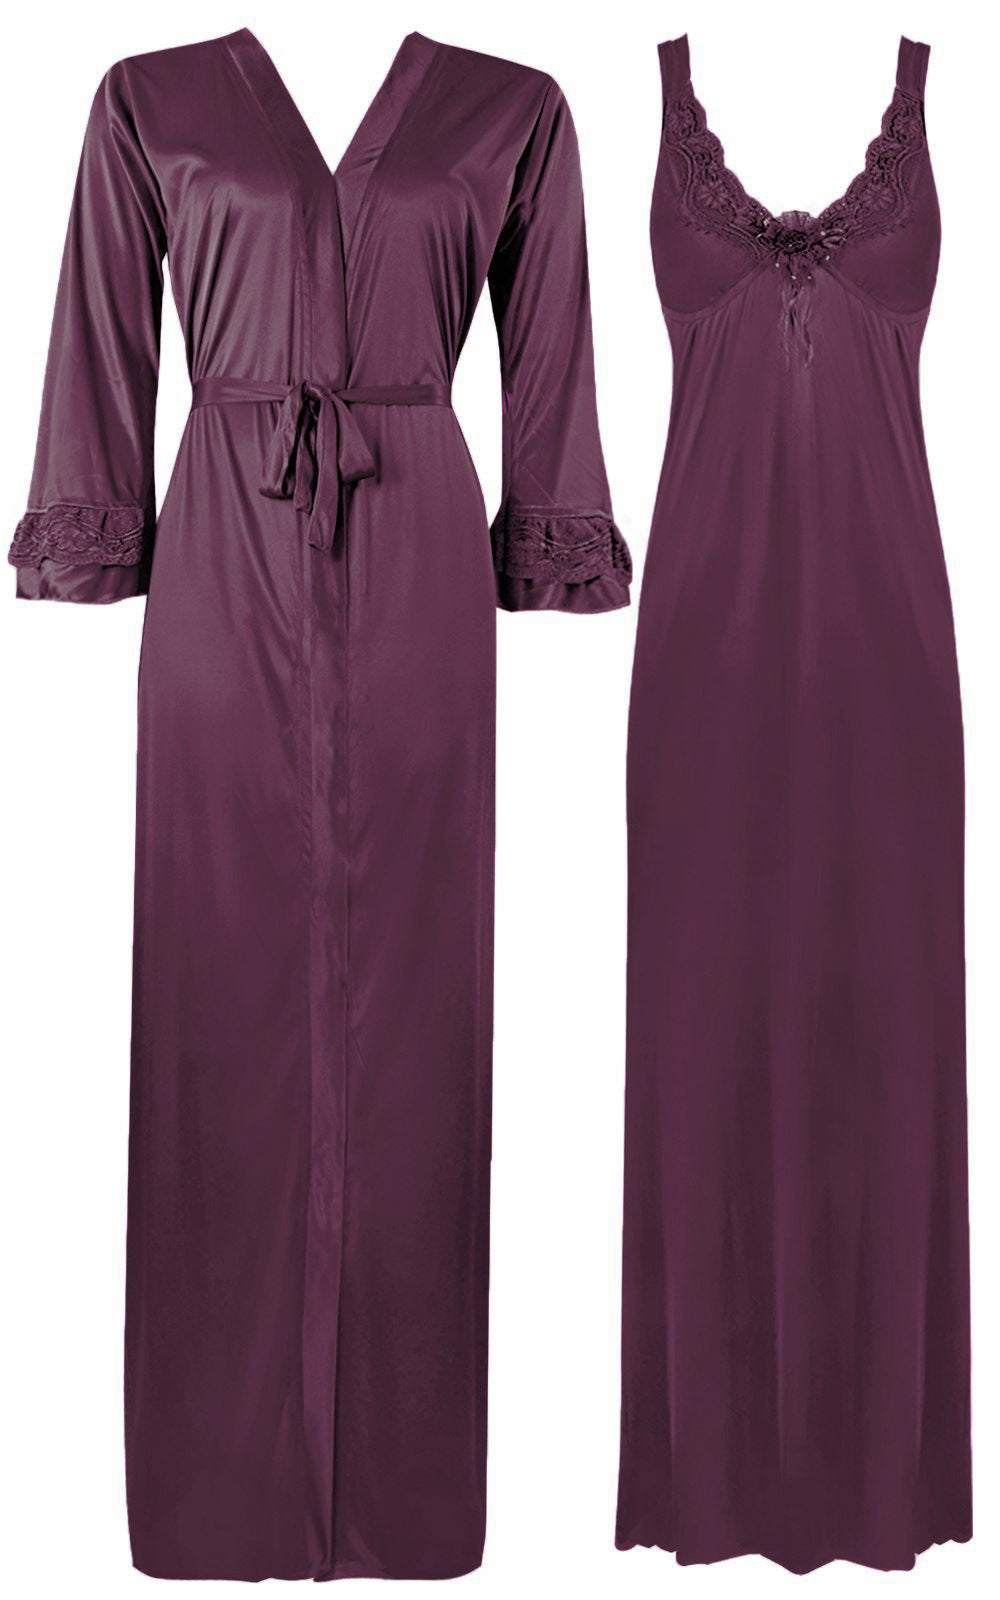 Color: Purple 2 Piece Satin Nighty and Robe With Long Sleeve Dressing Gown Size: XL